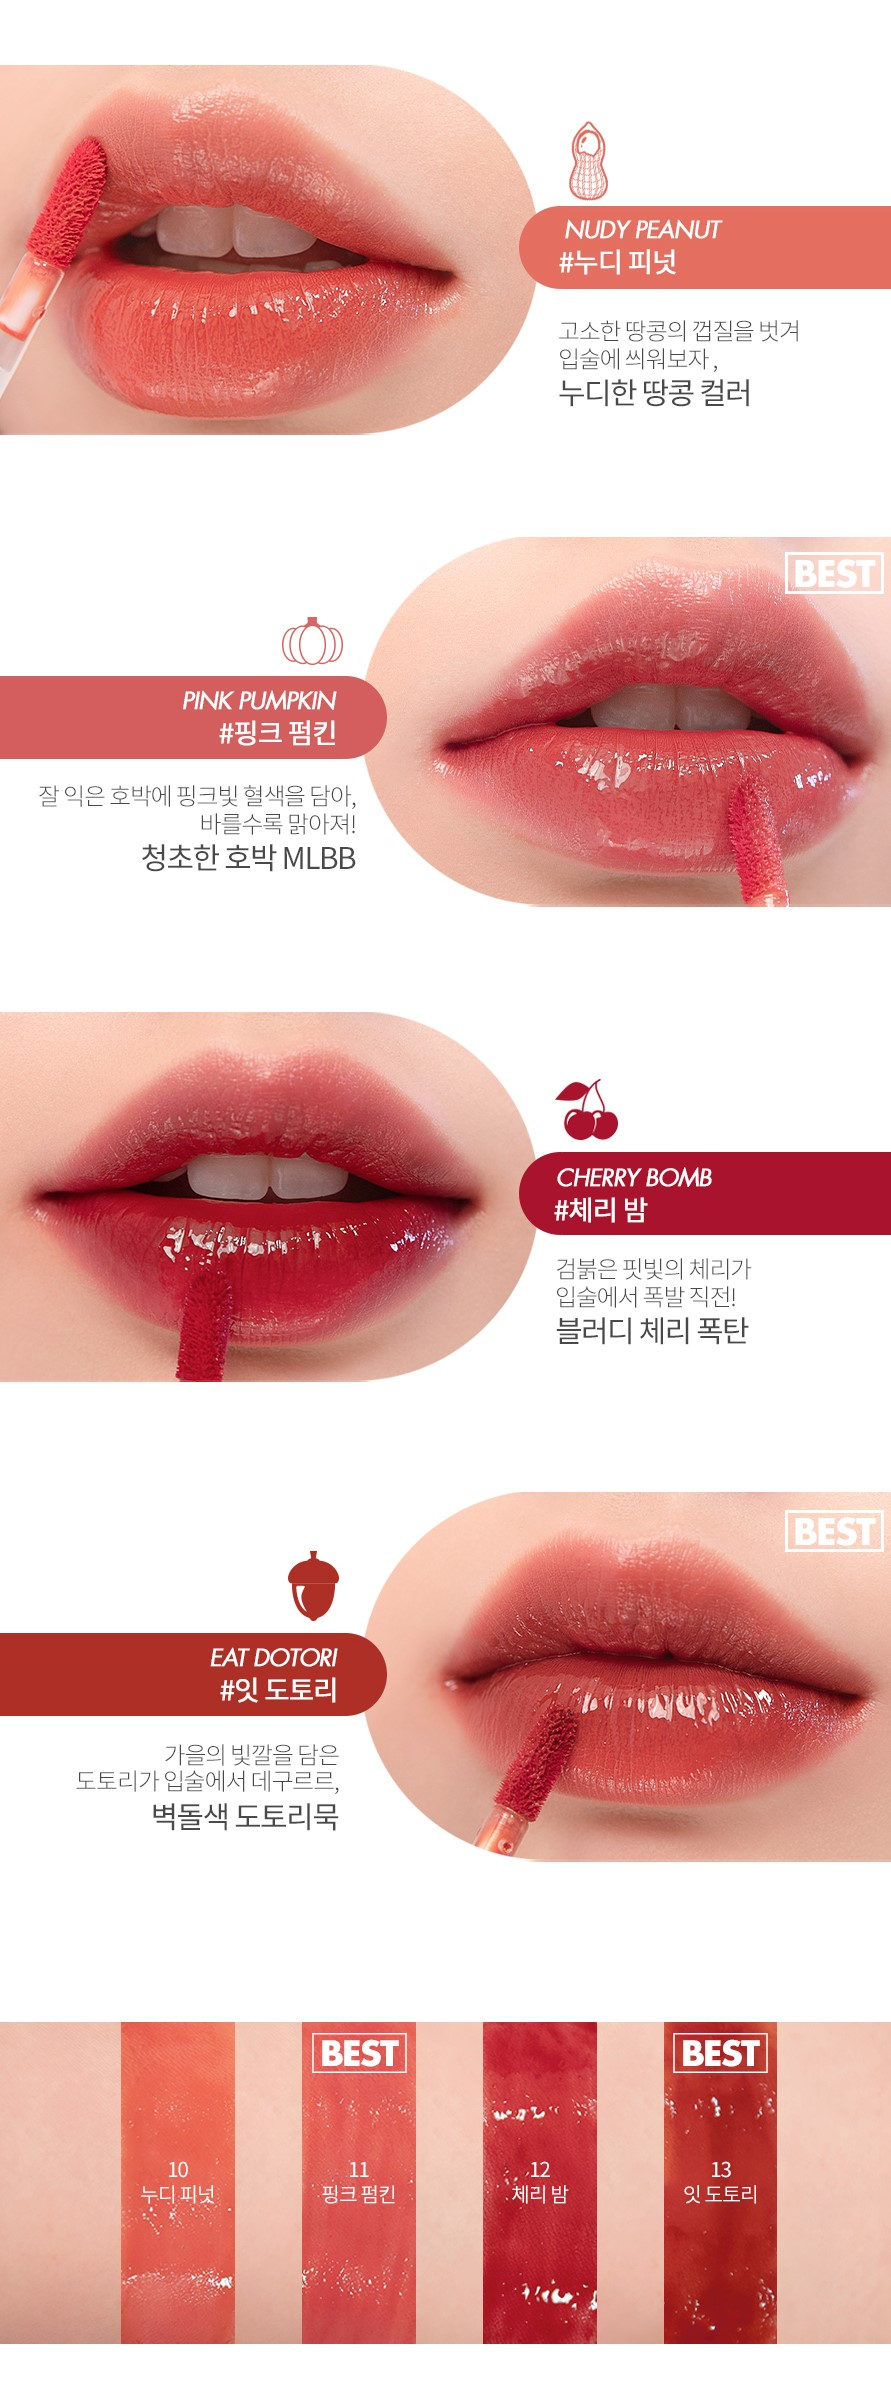 JuzBeauty_JuzBeautyMalaysia_Authentic_Kbeauty_Romand_Juicy_Lasting_Tint_3.jpg